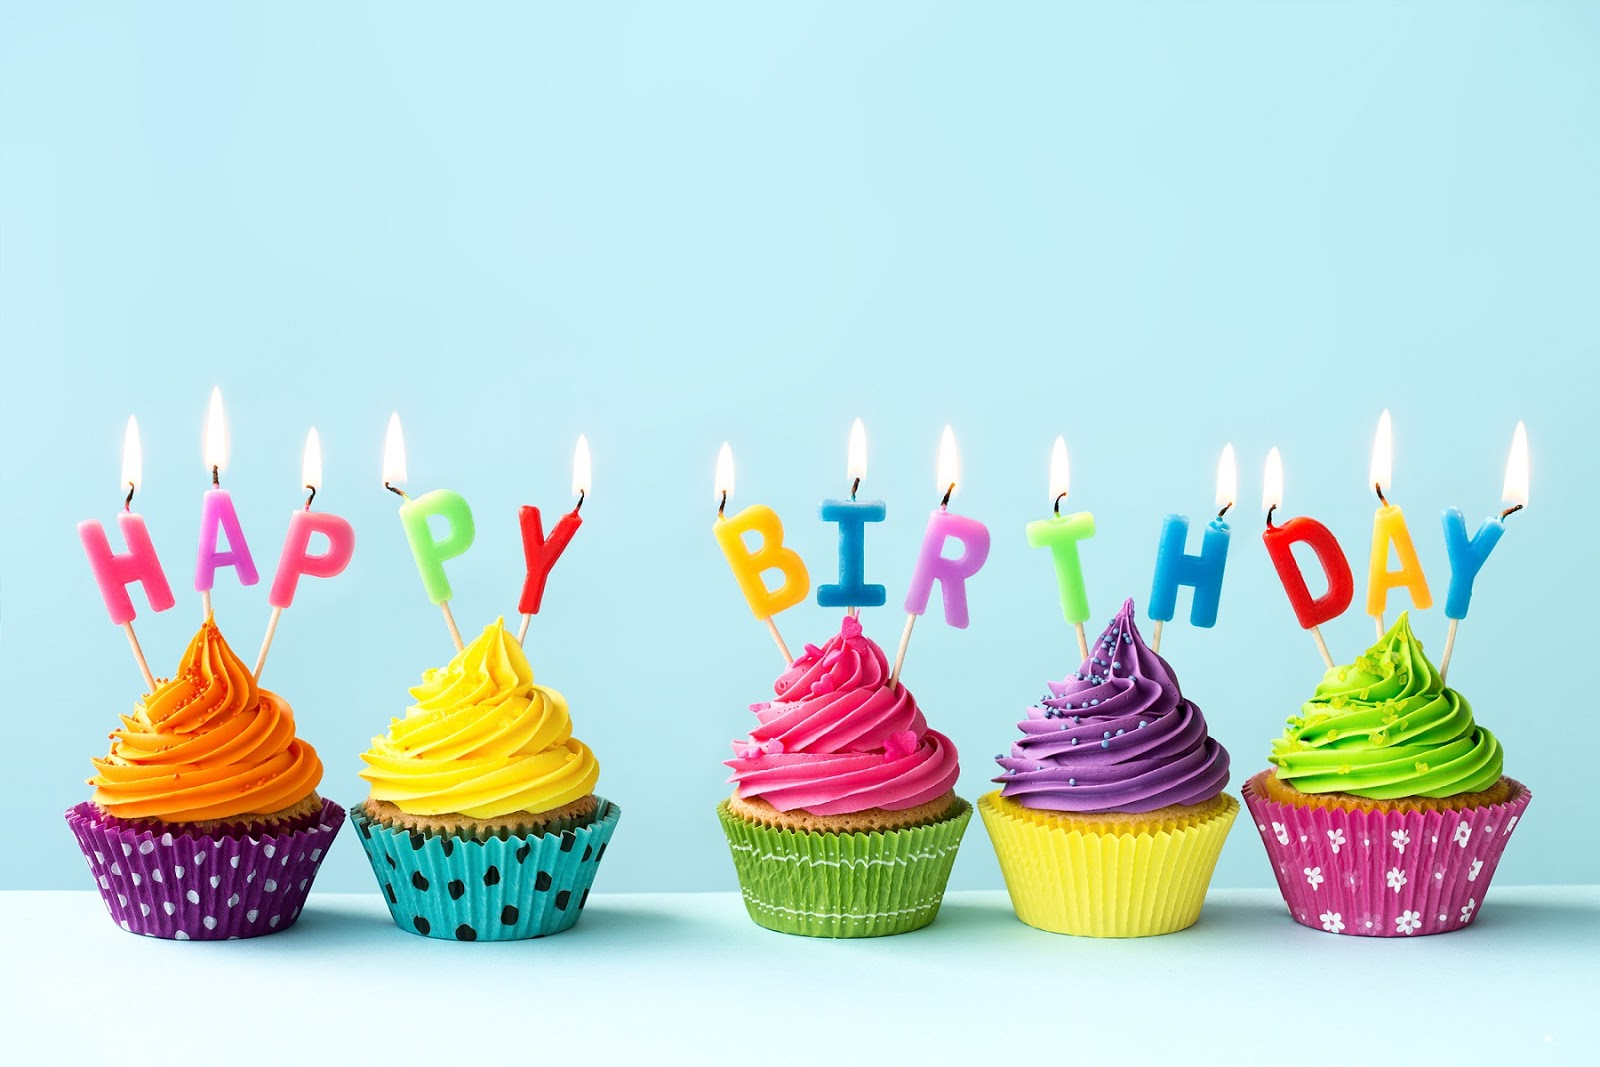 Hd wallpaper birthday - Top 20 Happy Birthday Hd Wallpapers Pictures